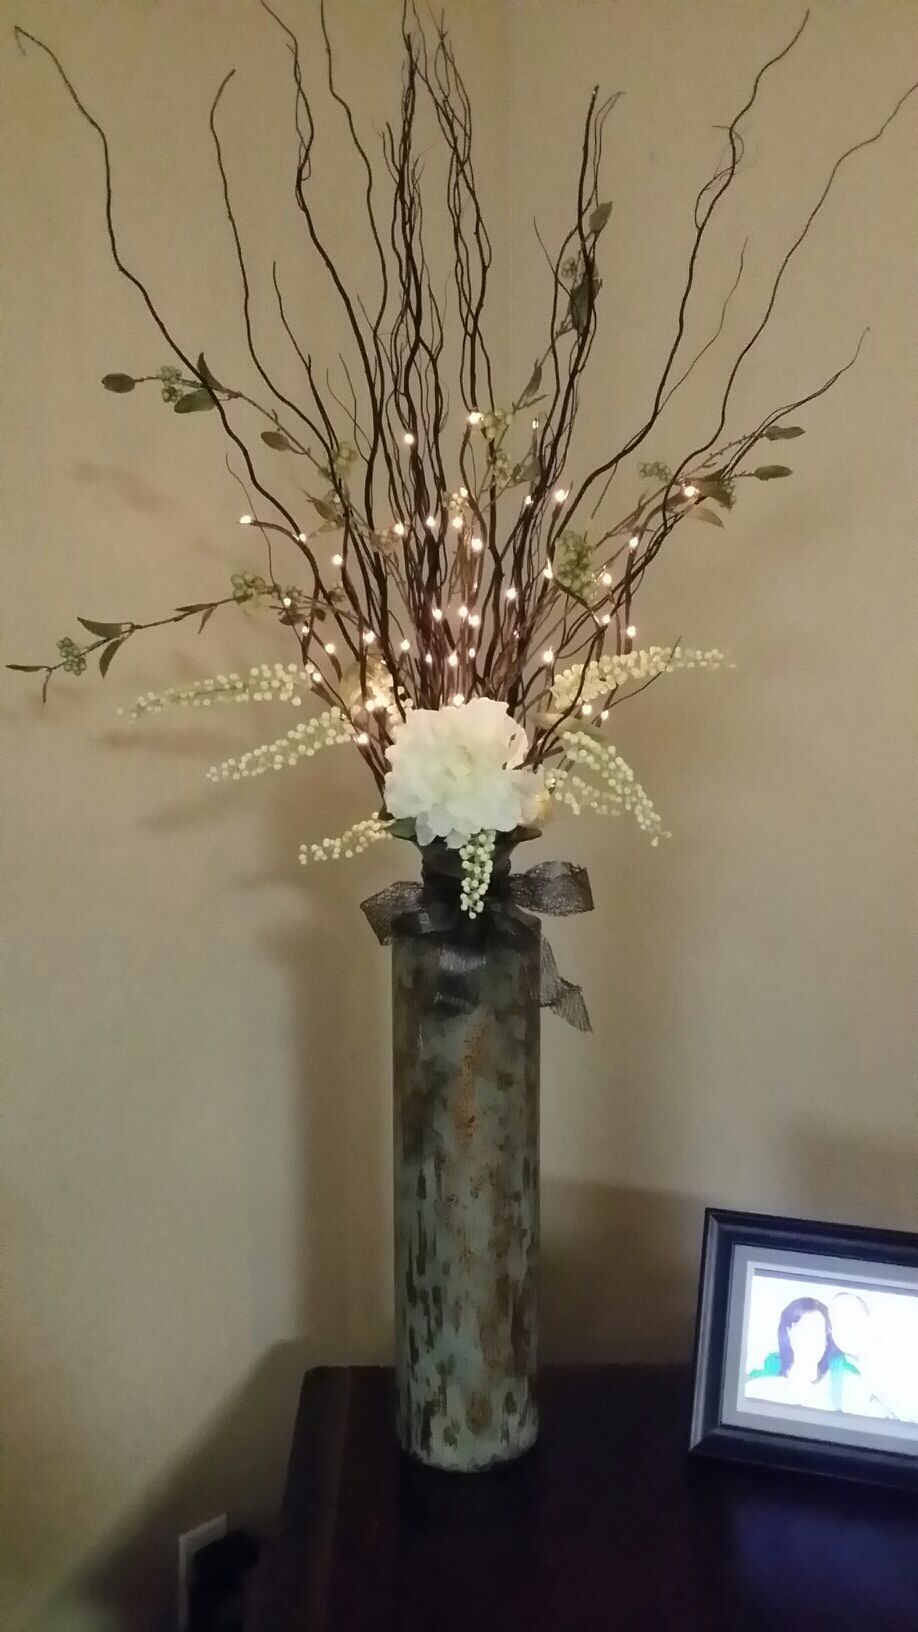 I M In Love With This One I Created Metal Vase Decorative Floral Twigs Pre Lit Lights Big Flower A Floor Vase Decor Tall Floor Vases Tall Vase Arrangements